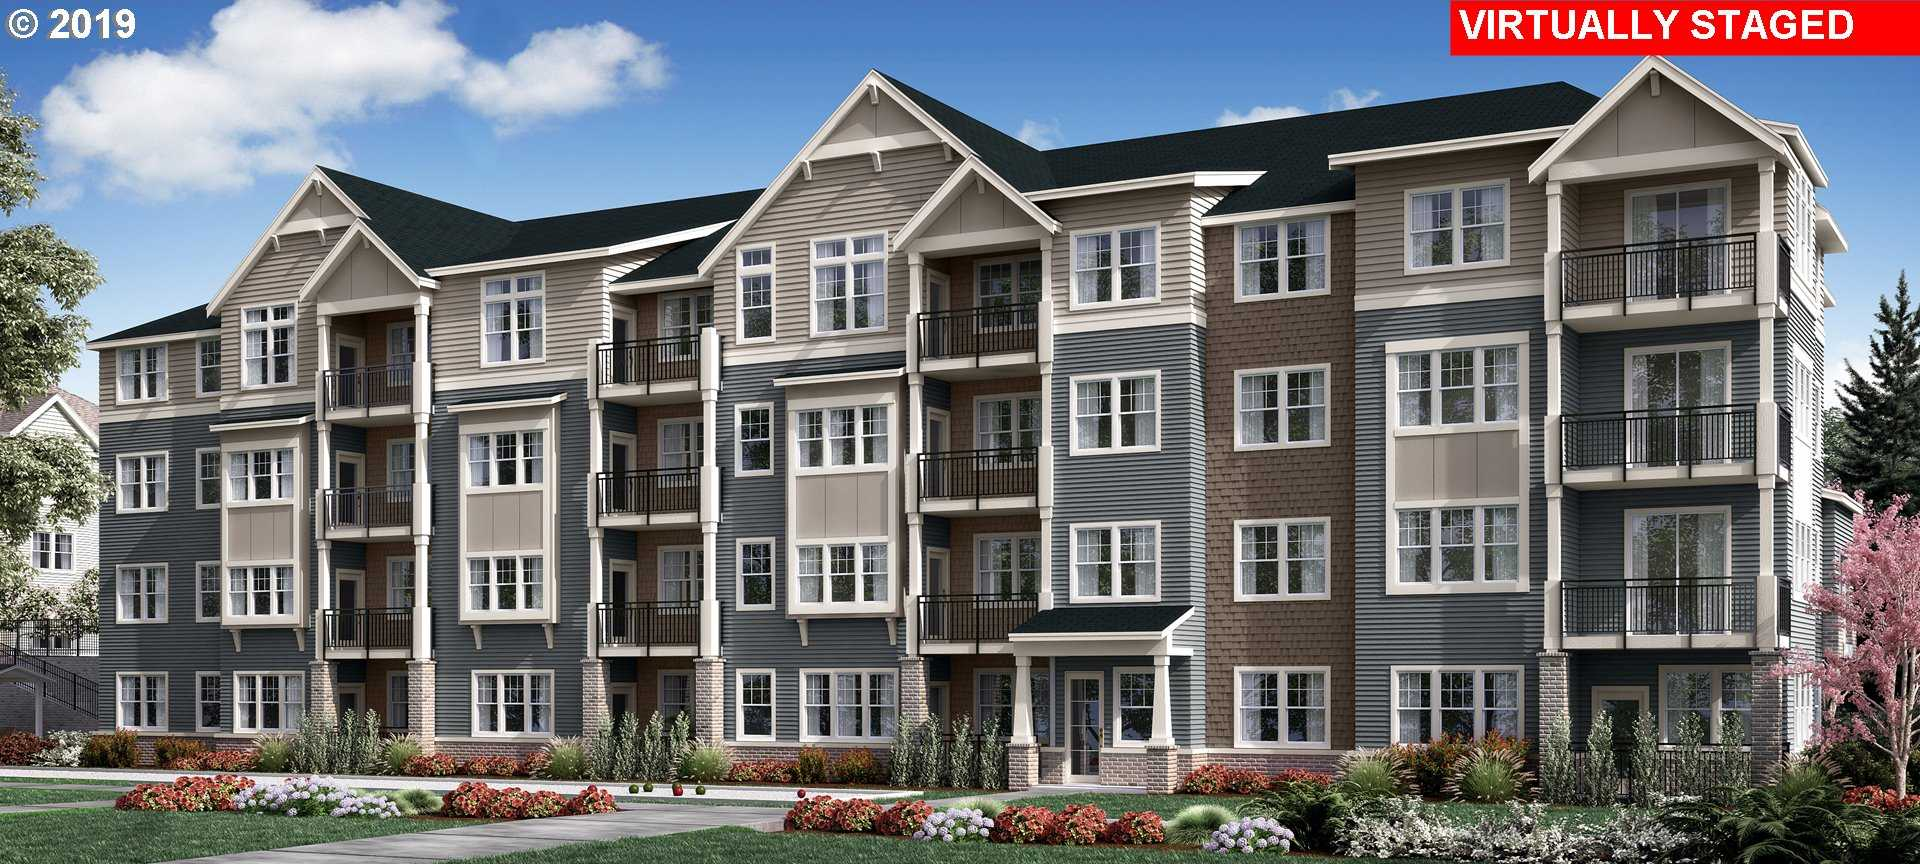 $297,990 - 3Br/2Ba -  for Sale in Veridian At River Terrace, Sherwood